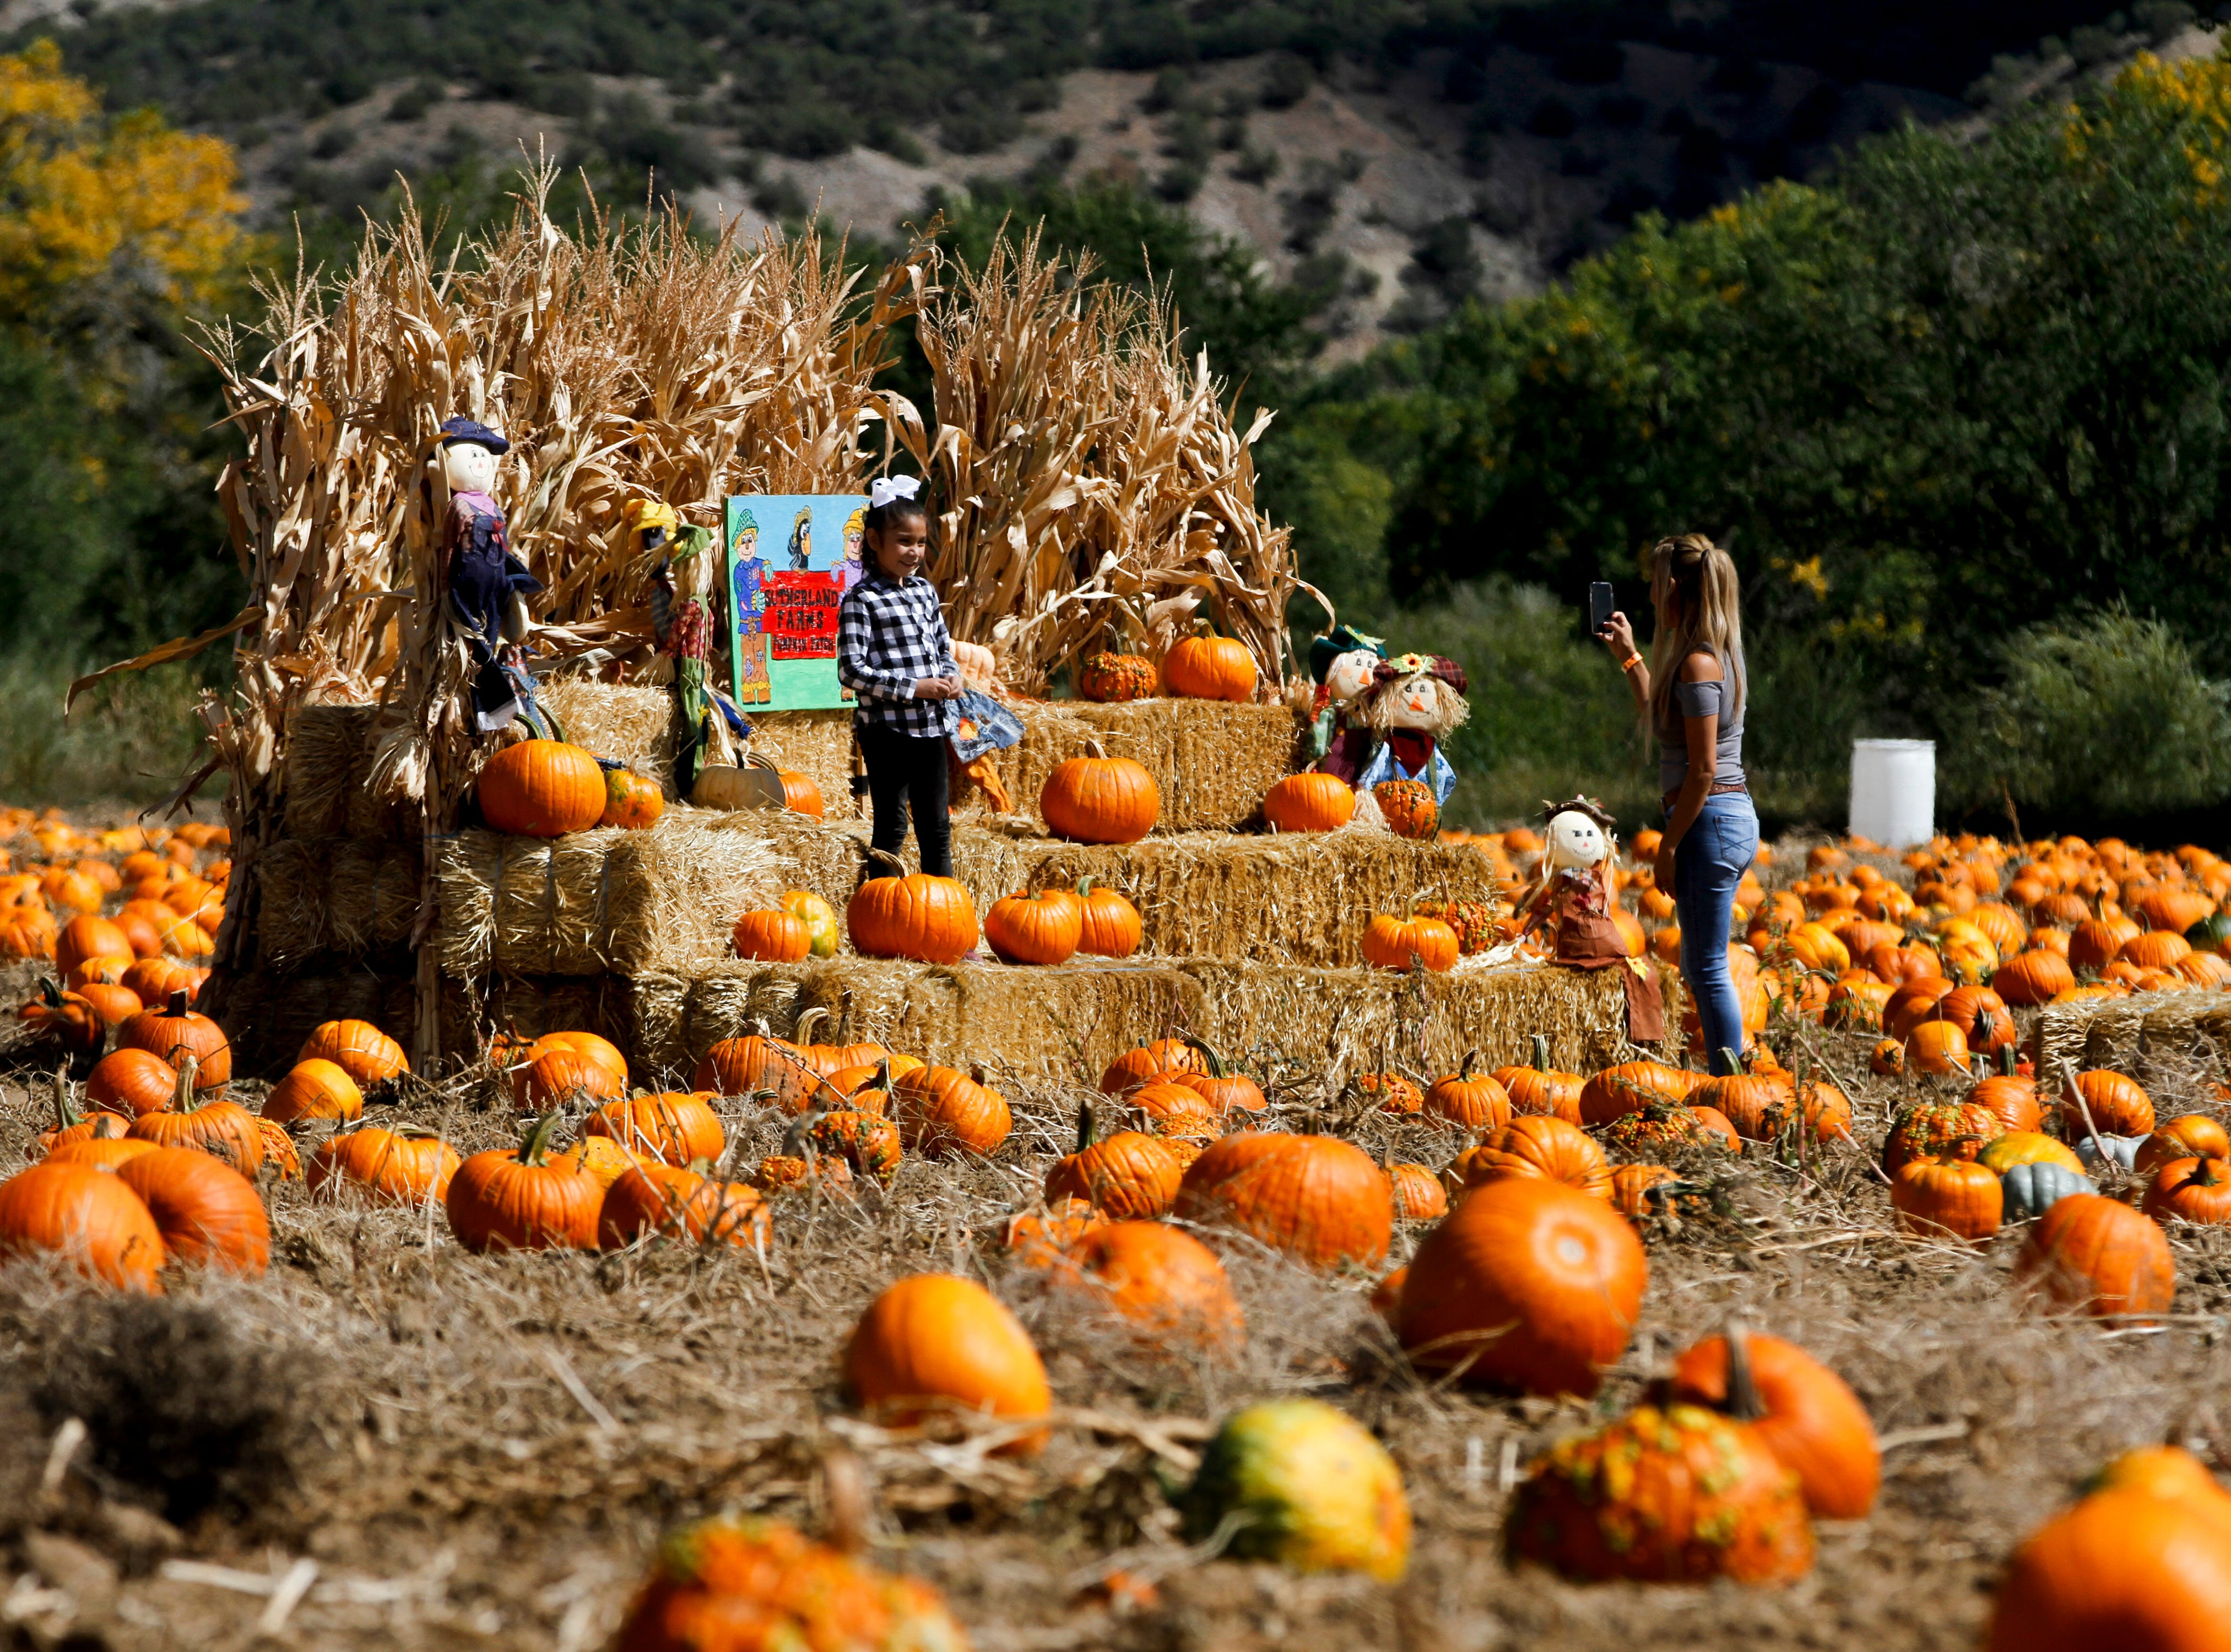 Josiphine Charley poses for a photo for her mother Cindy Charley, Friday, Oct. 5, 2018 while taking a break from searching for pumpkins at the Sutherland Farm's pumpkin patch in Aztec. The Pumpkin Festival begins today, Oct. 6, 2018.